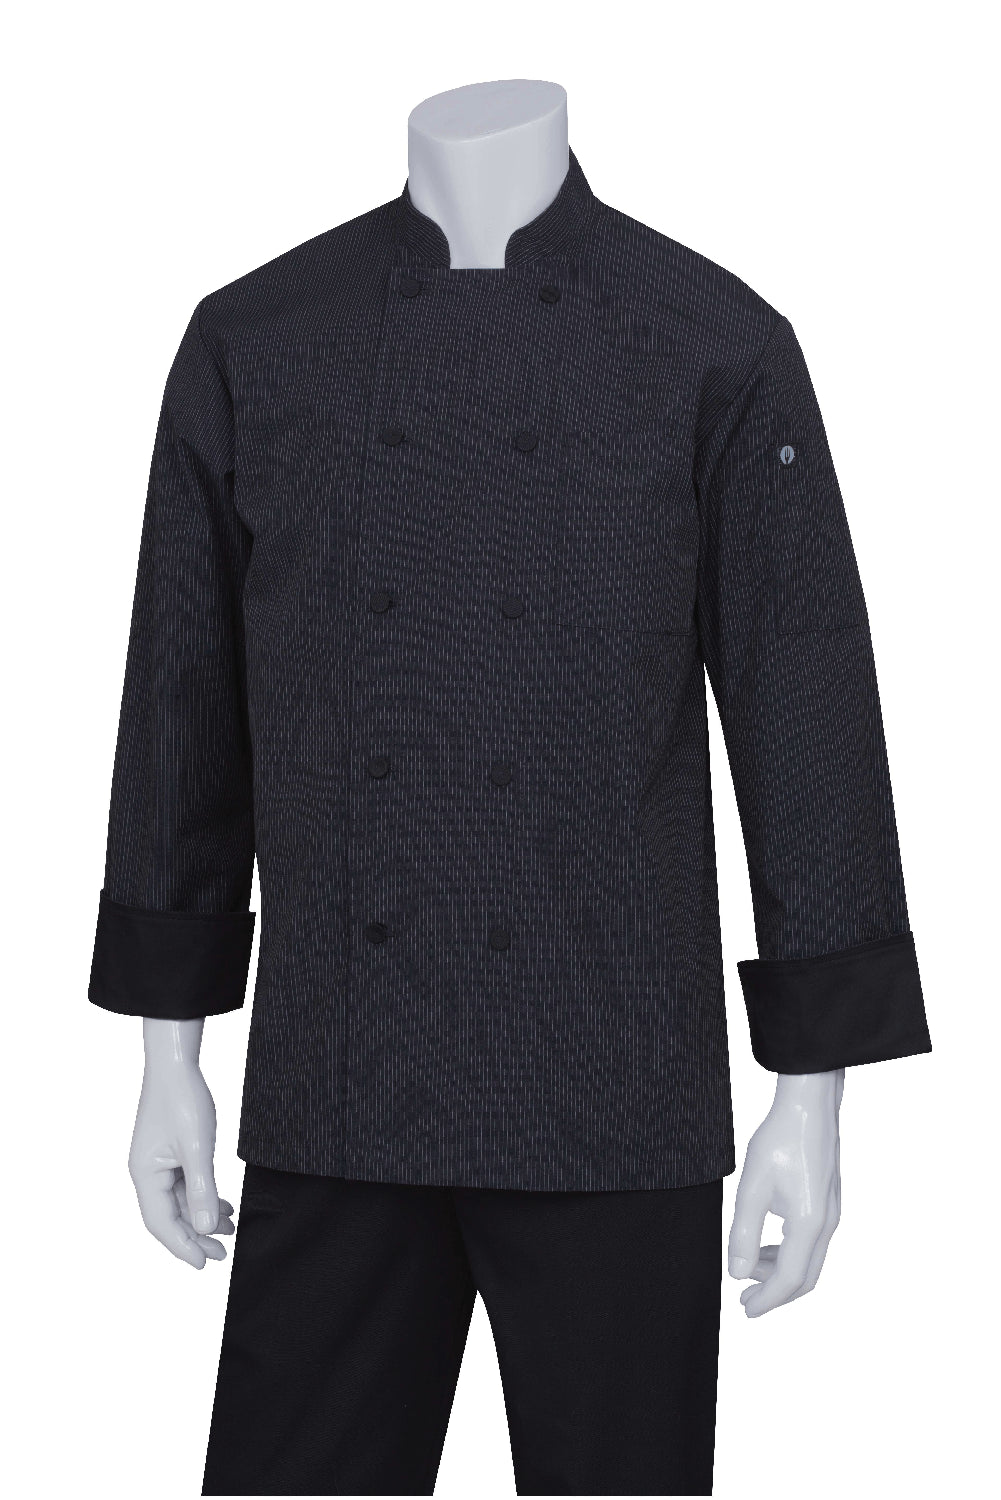 Carlisle Men's Executive Stripe Chef Coat by Chef Works Black Front